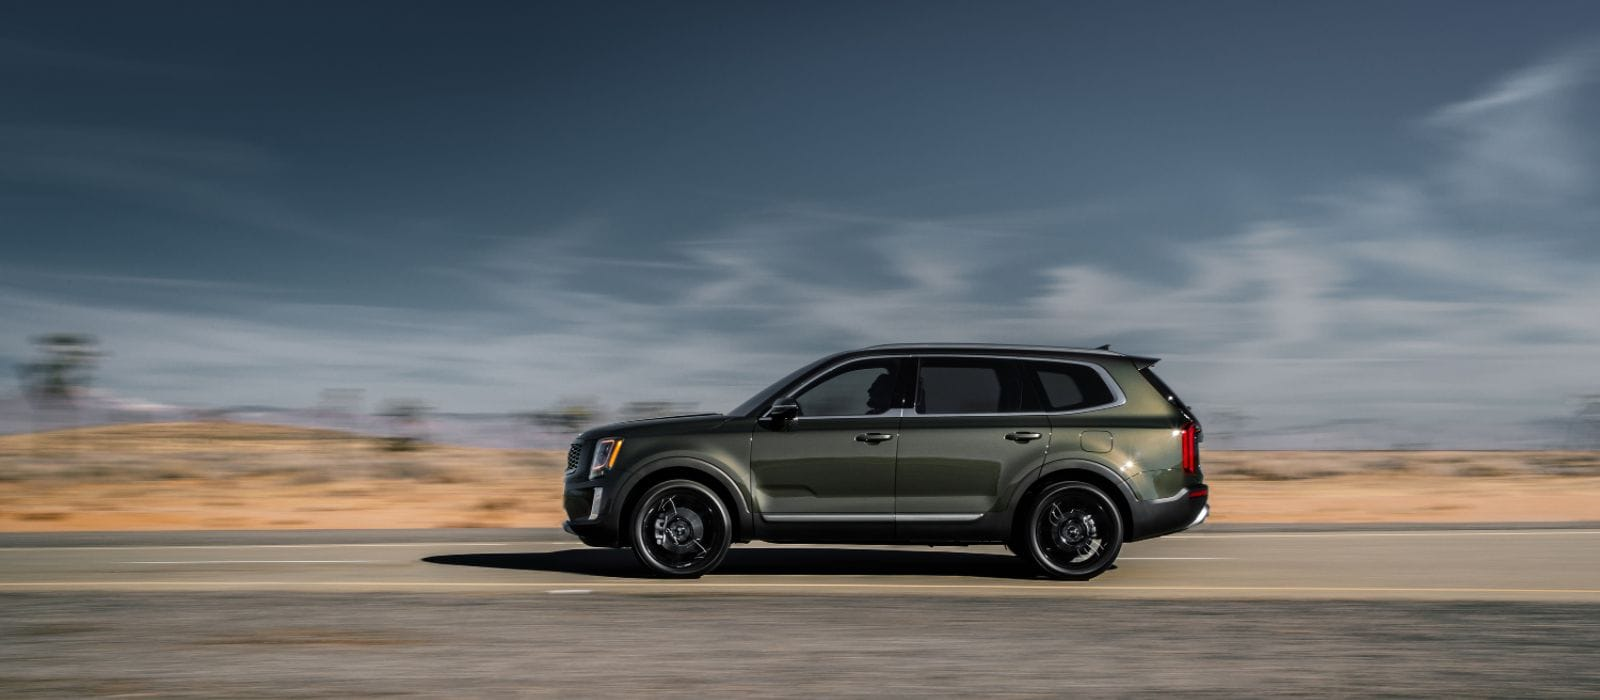 2020 Kia Telluride | Performance, Tech, & More